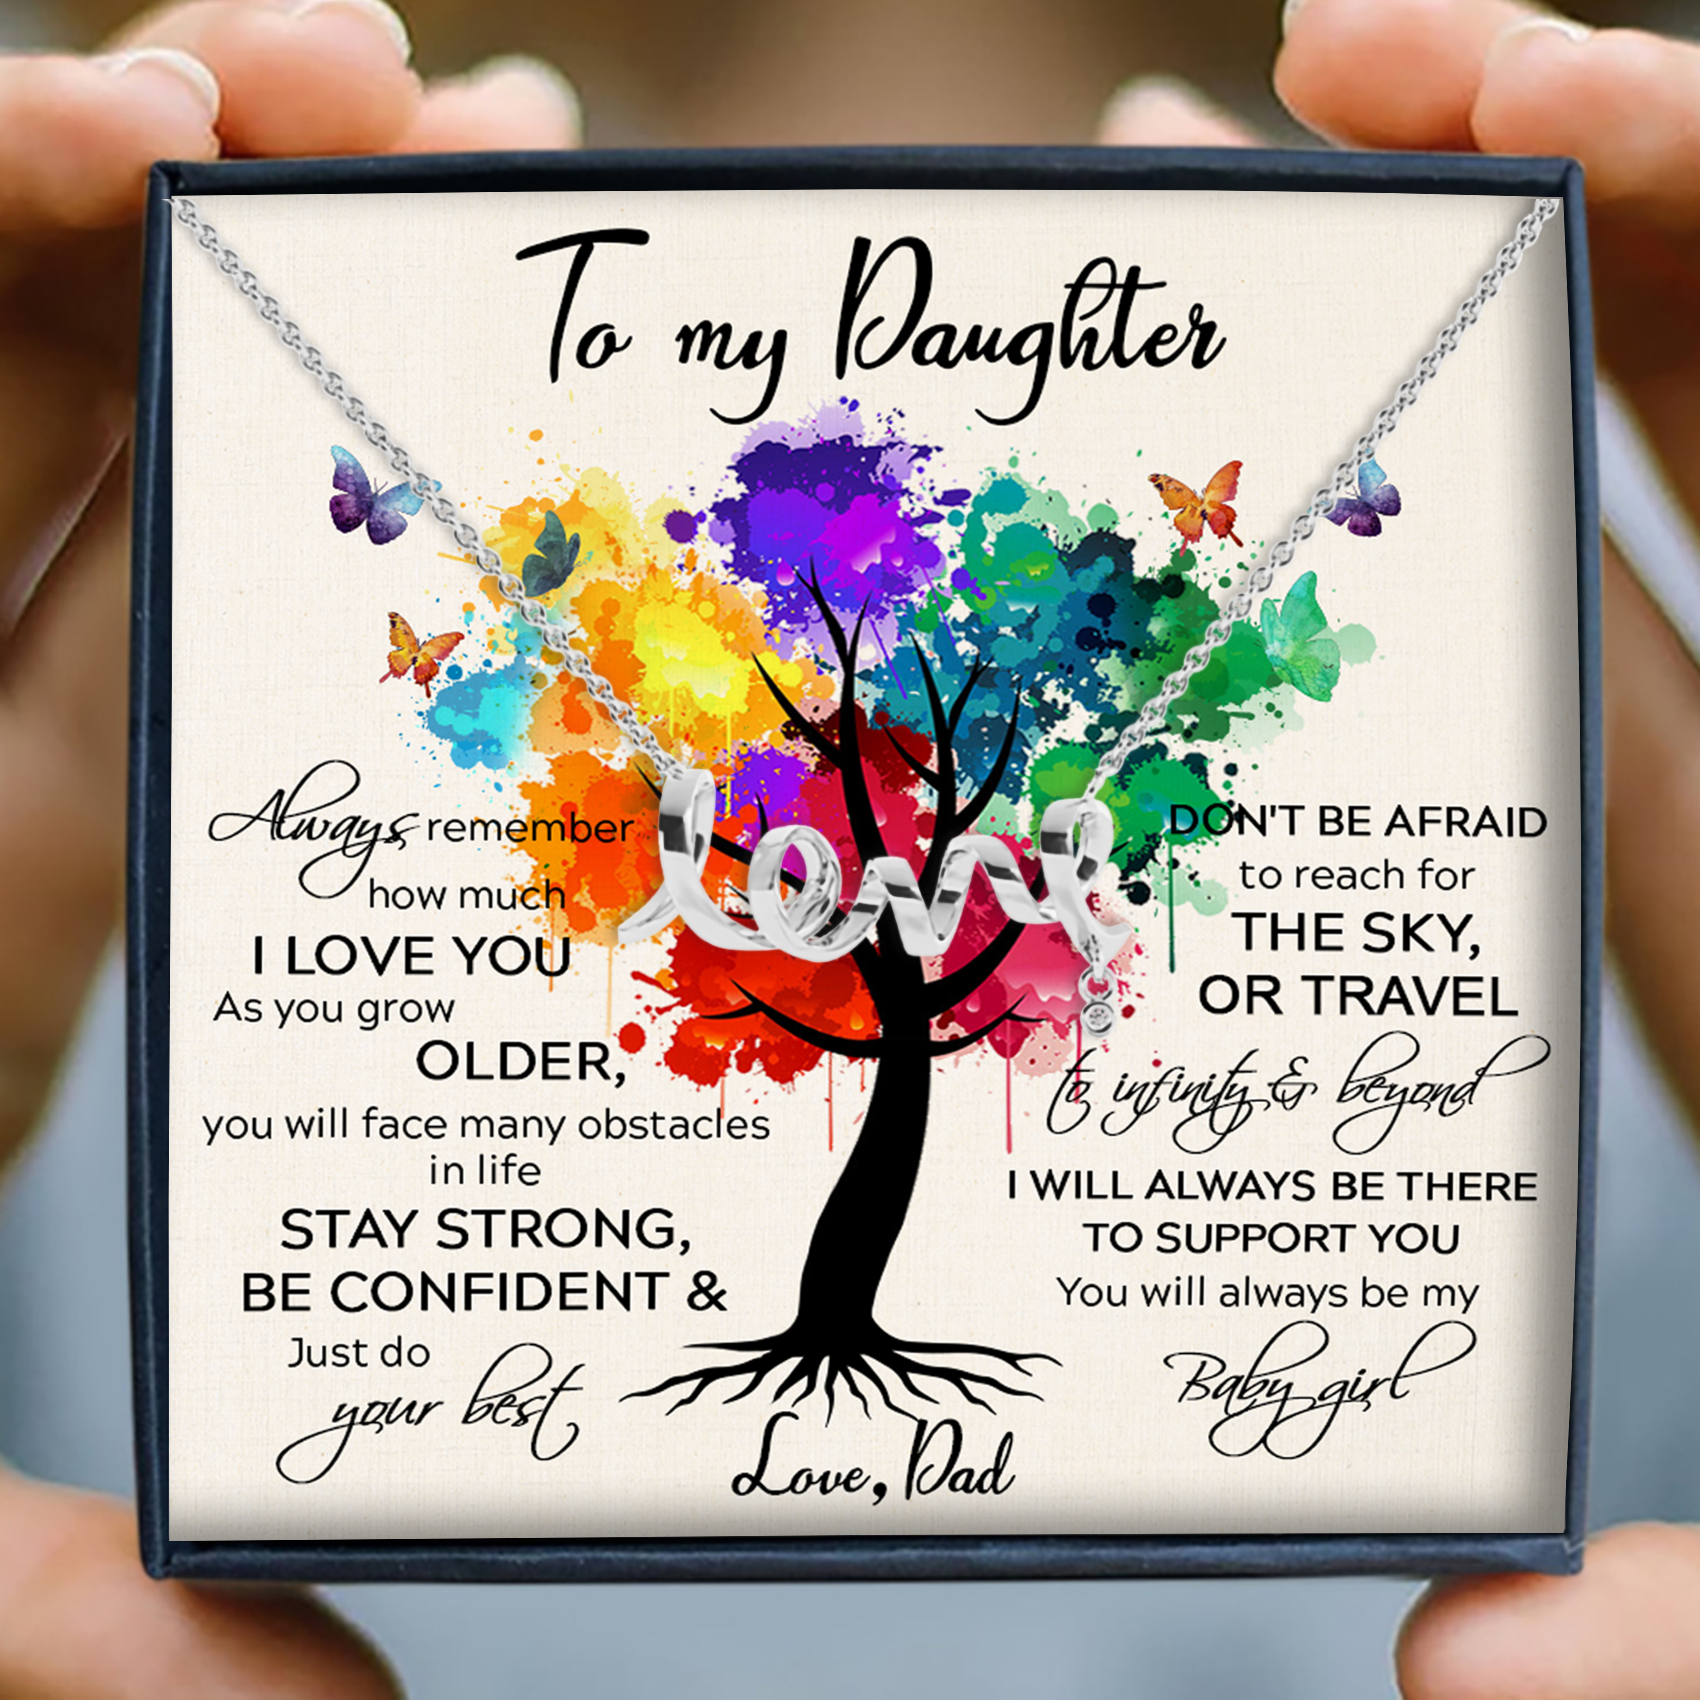 To my daughter necklace - To infinity and beyond necklace - Gift for daughter from dad - Scripted love necklace with message card - 2120